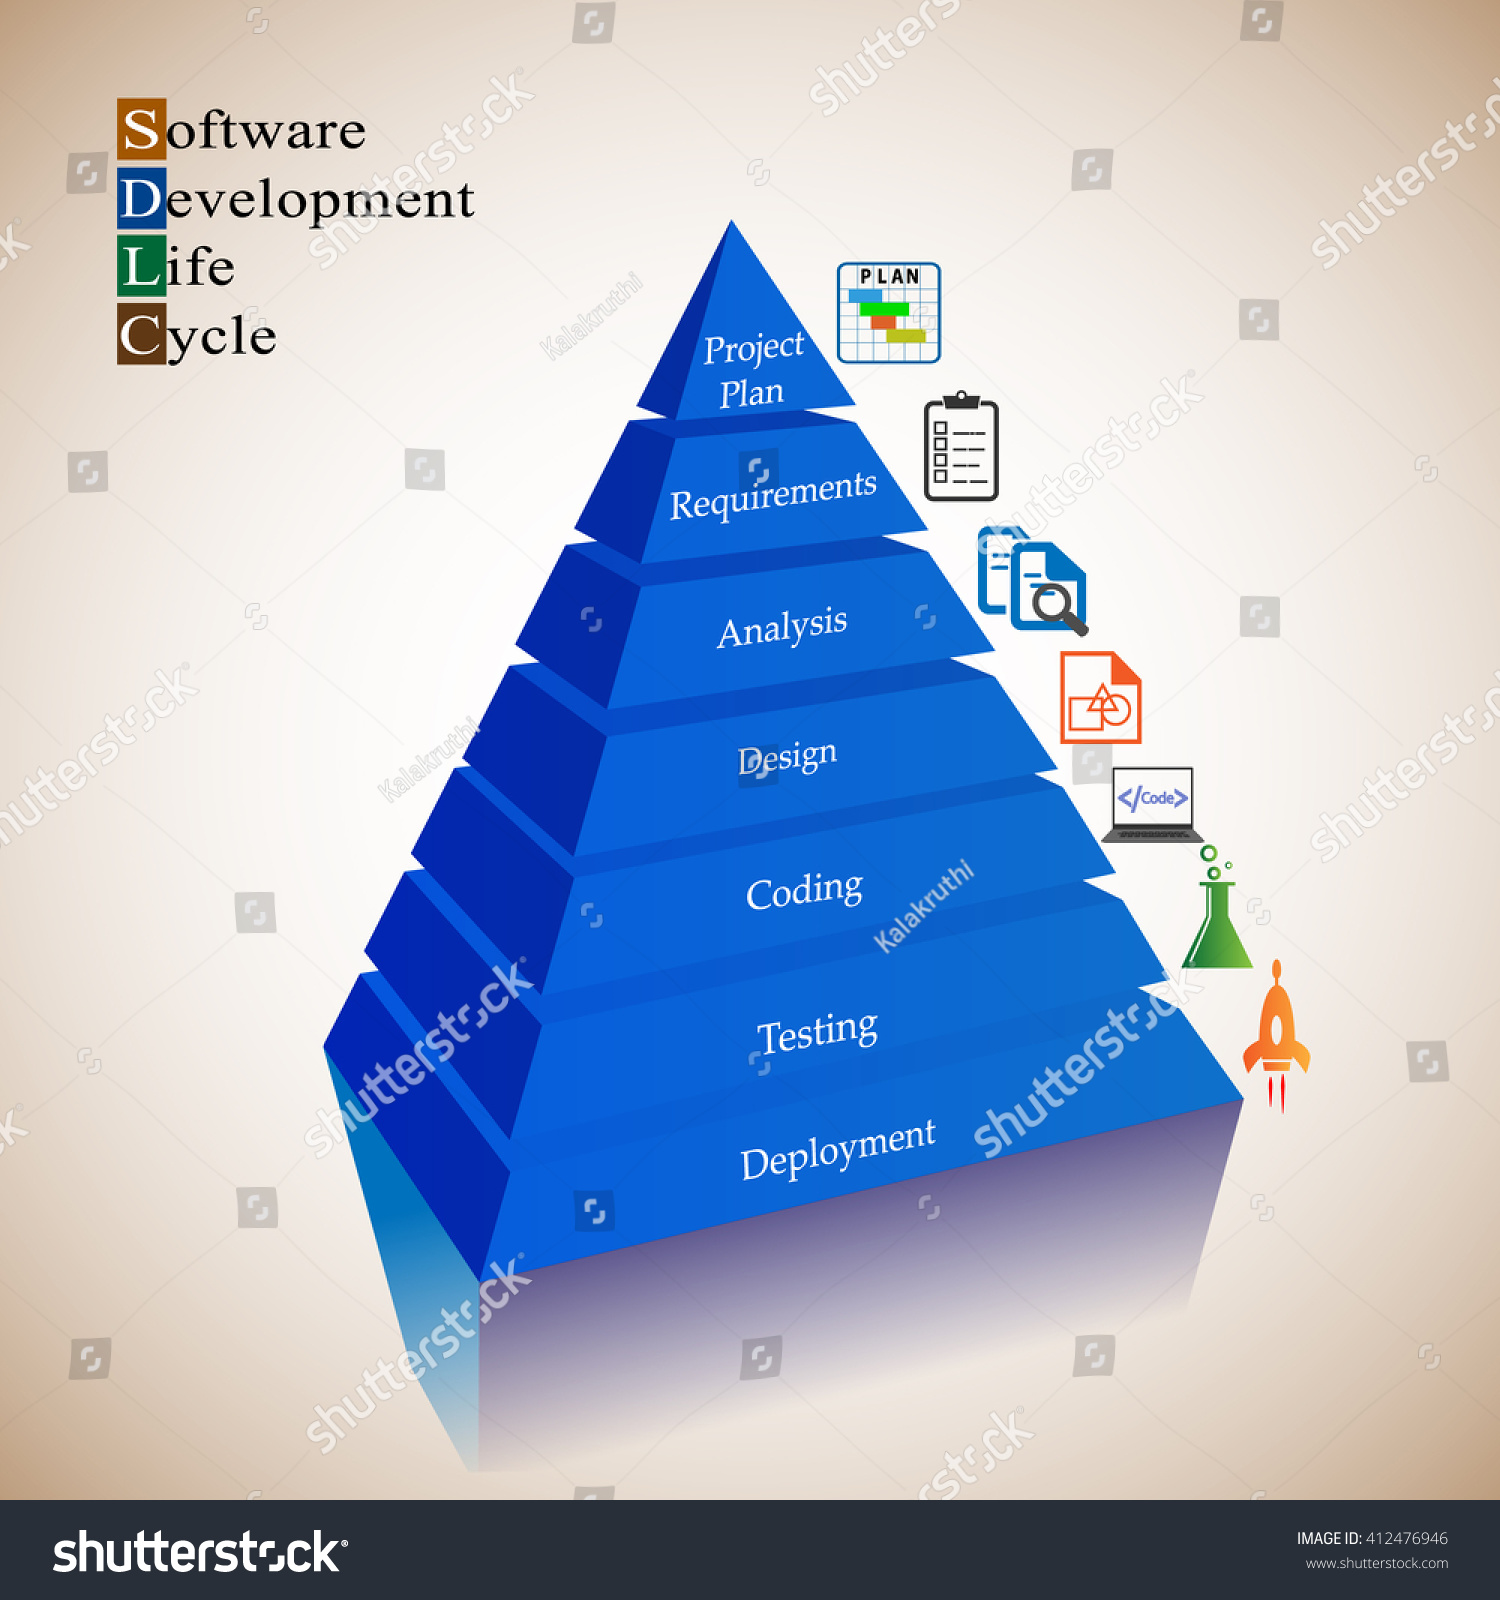 software development life cycle steps